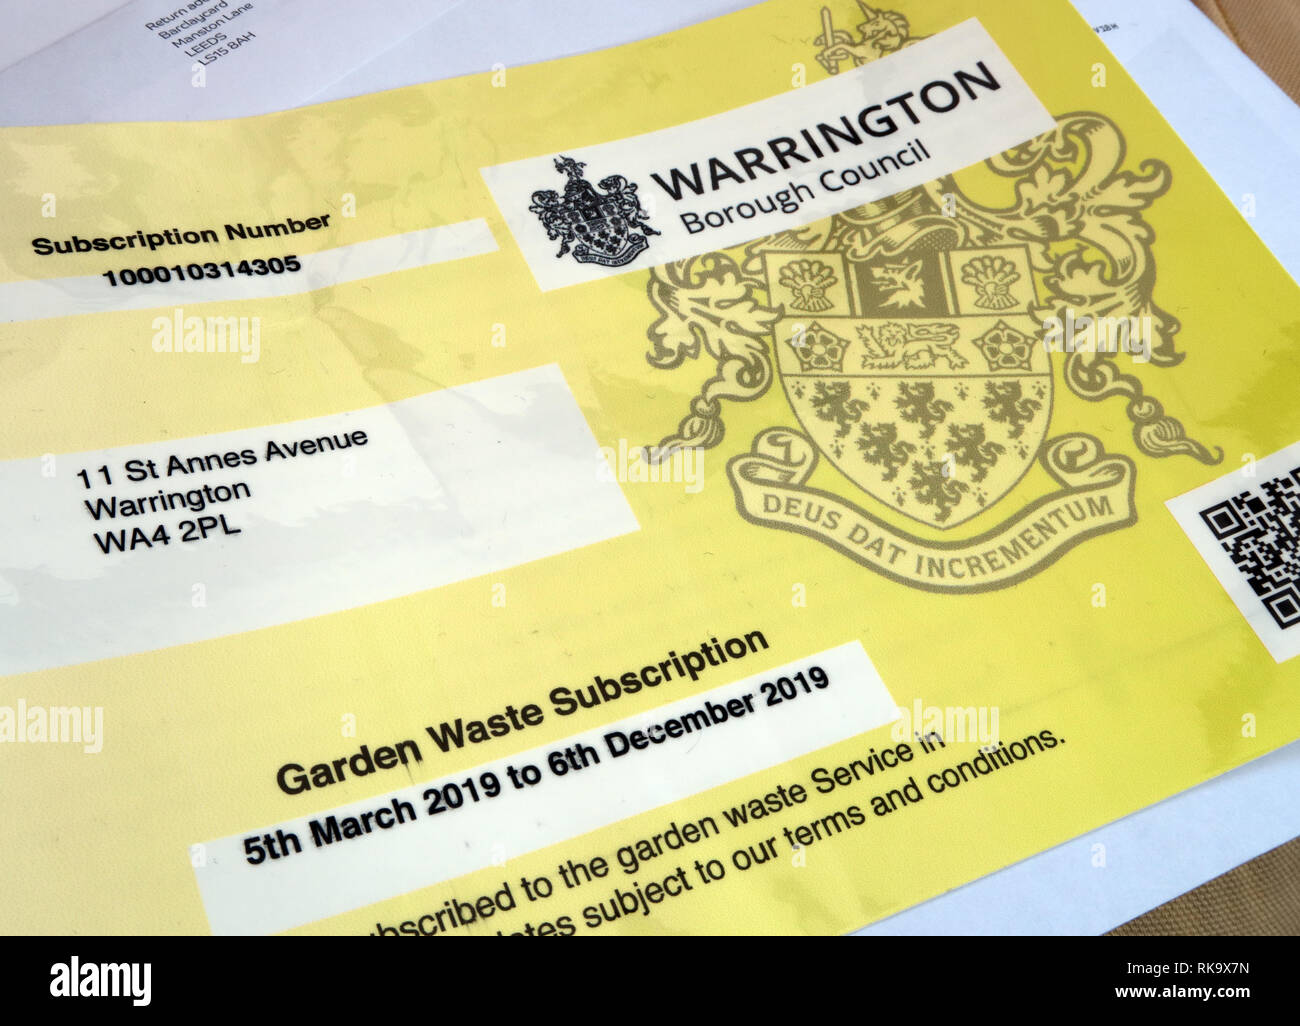 Warrington Borough Council, Garden Waste Subscription, collection of green waste charges, 2019 for Green Bin - Stock Image